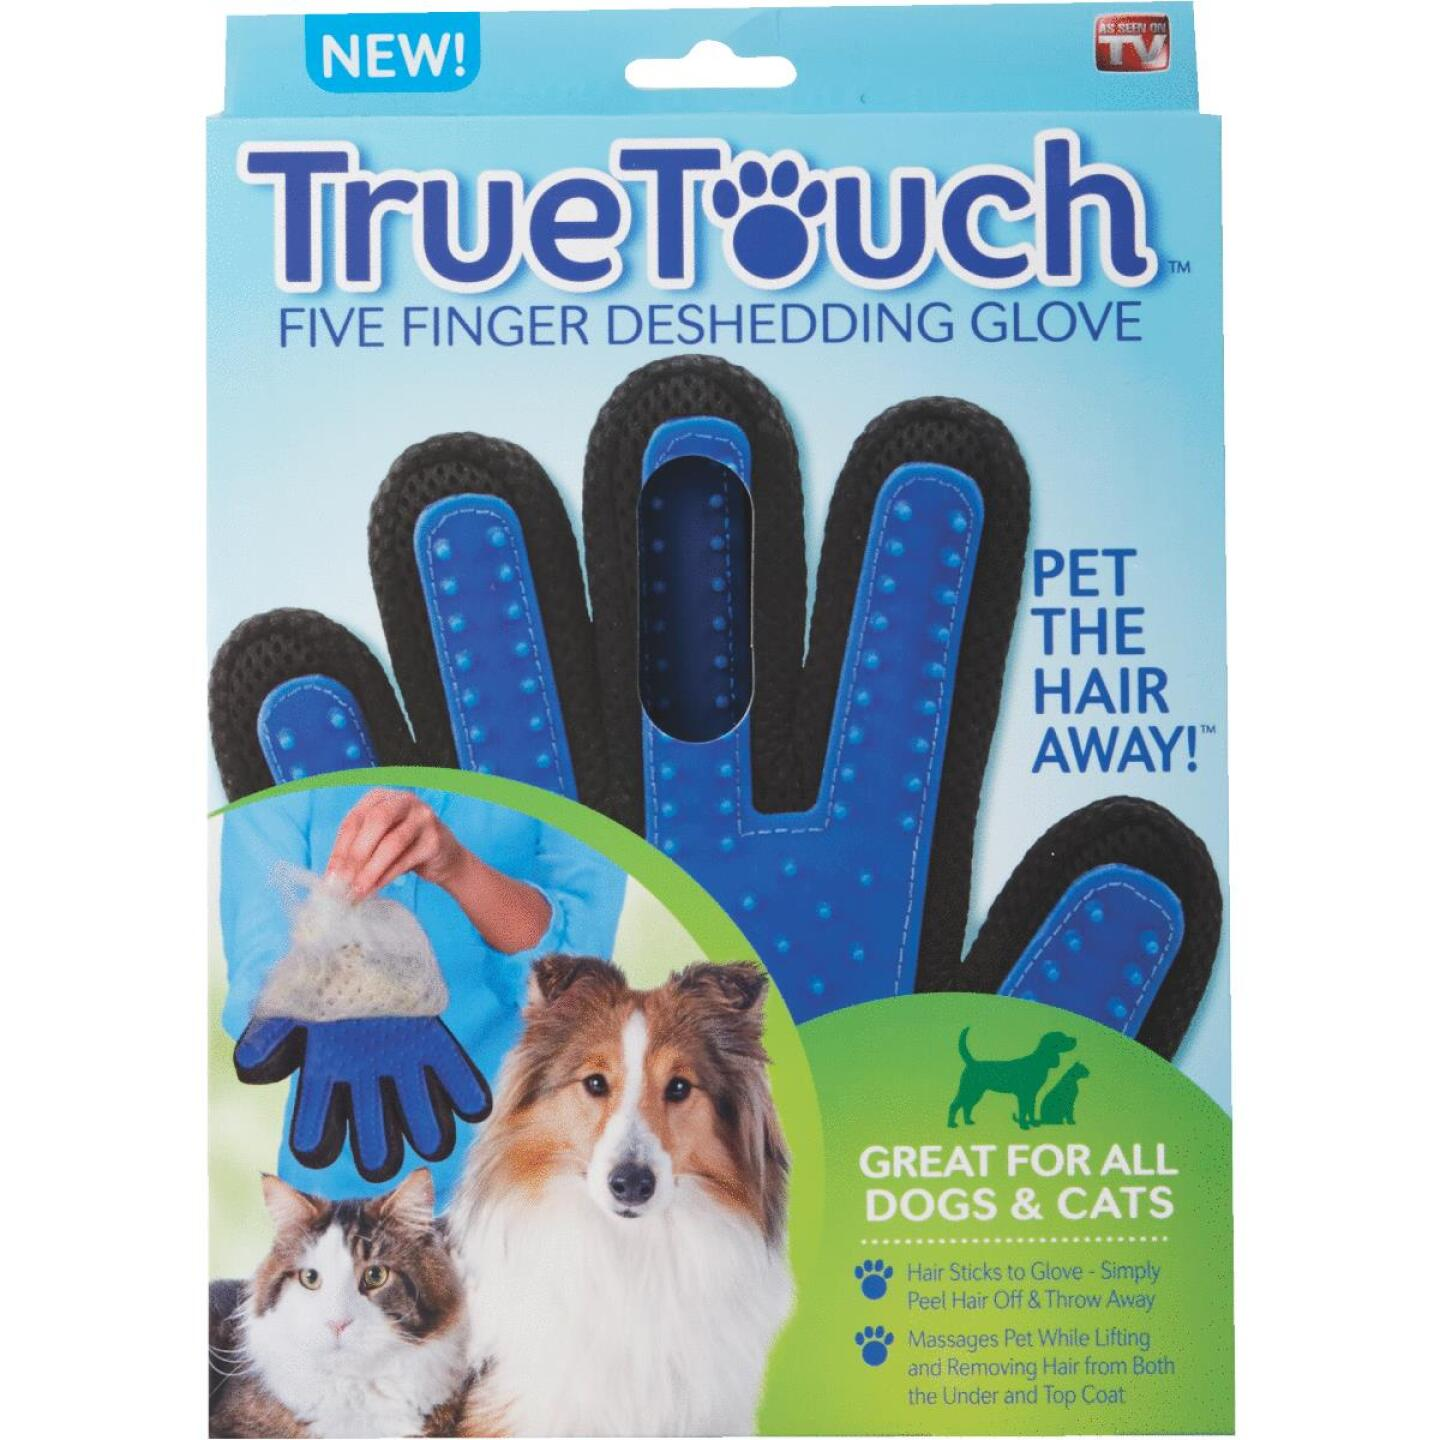 True Touch Silicone Tip Five Finger Deshedding Pet Glove Image 2